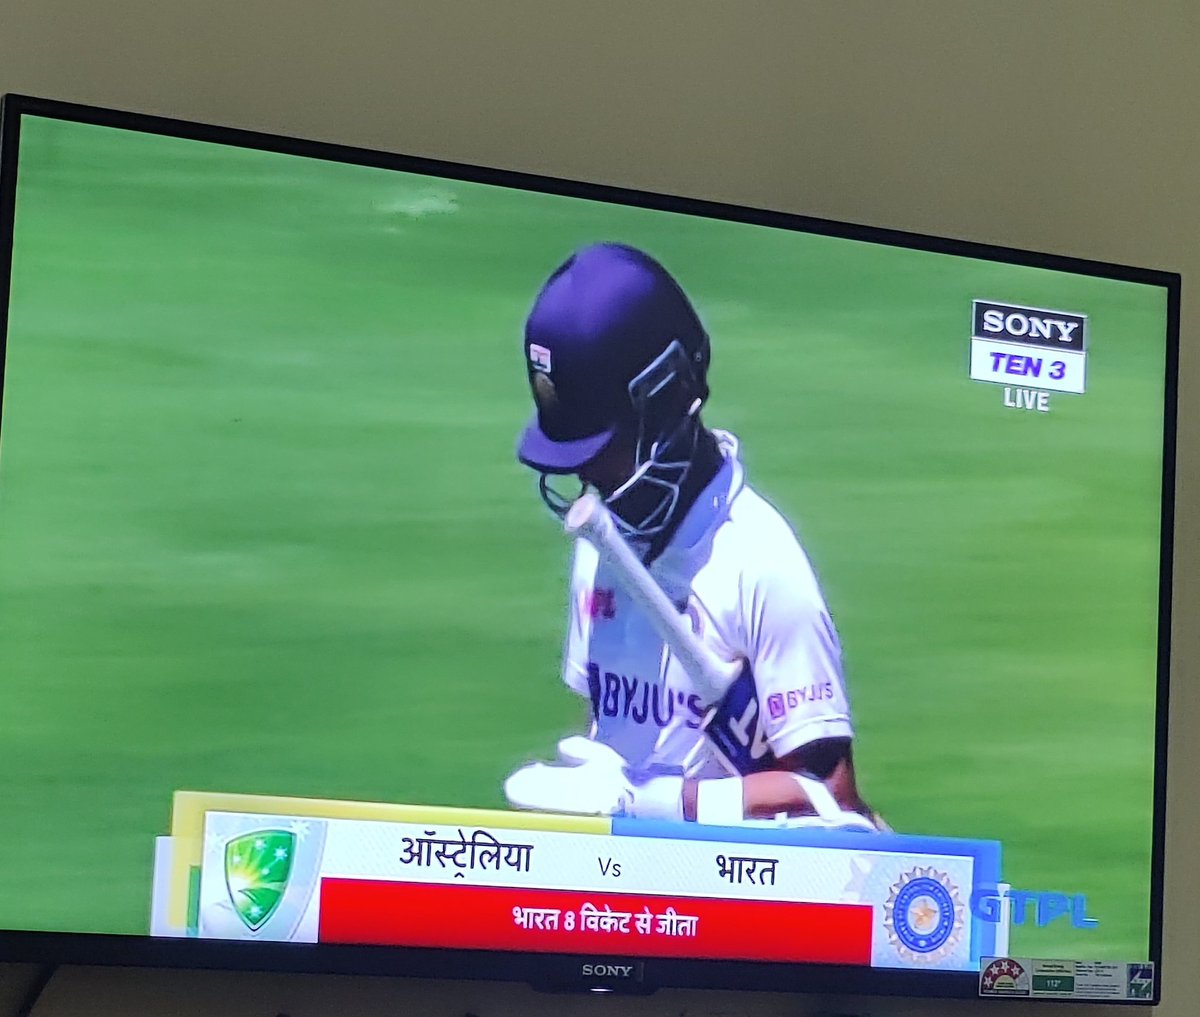 @imVkohli Great to see the character of Ajinkya Rahane after the win,what a calm composed man he is,and Shubman gill,a man of high quality. What's pleasing to see is that the team is not @imVkohli dependent at all! That's the spirit. Signed off the 2020 in style, the Jinks Style,Jai Hind🇮🇳